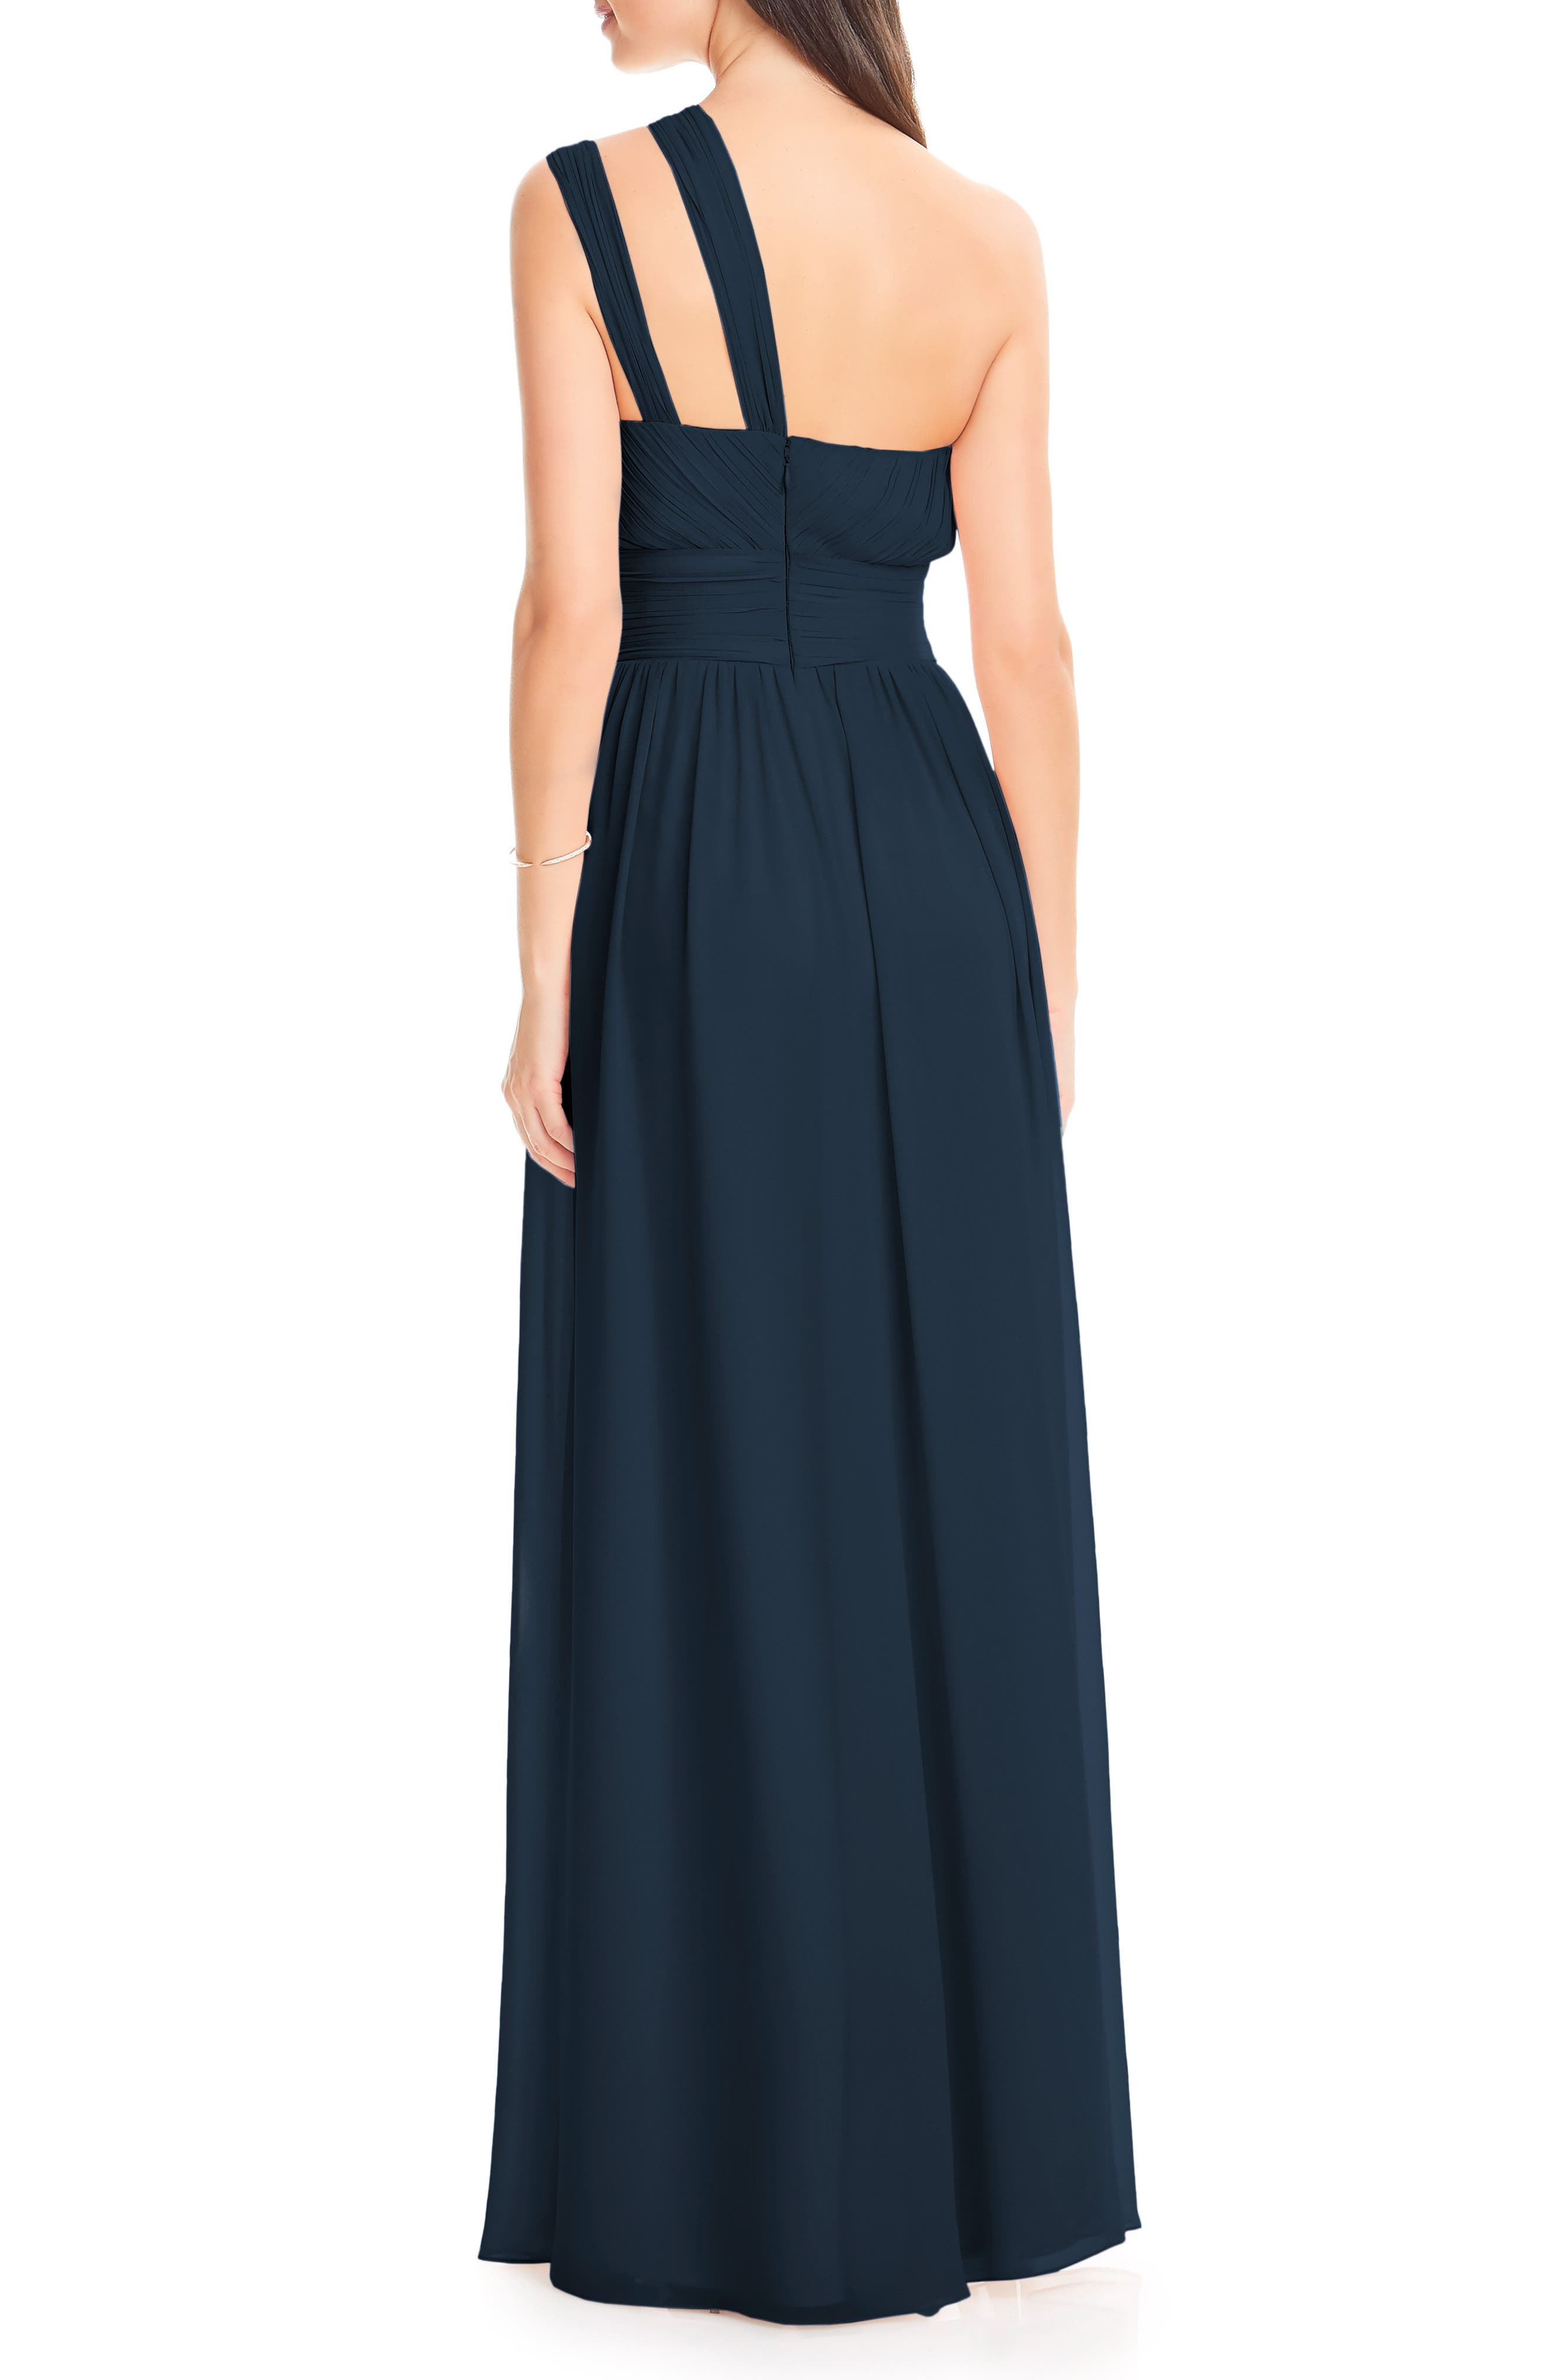 #LEVKOFF, Chiffon One-Shoulder Gown, Alternate thumbnail 2, color, NAVY